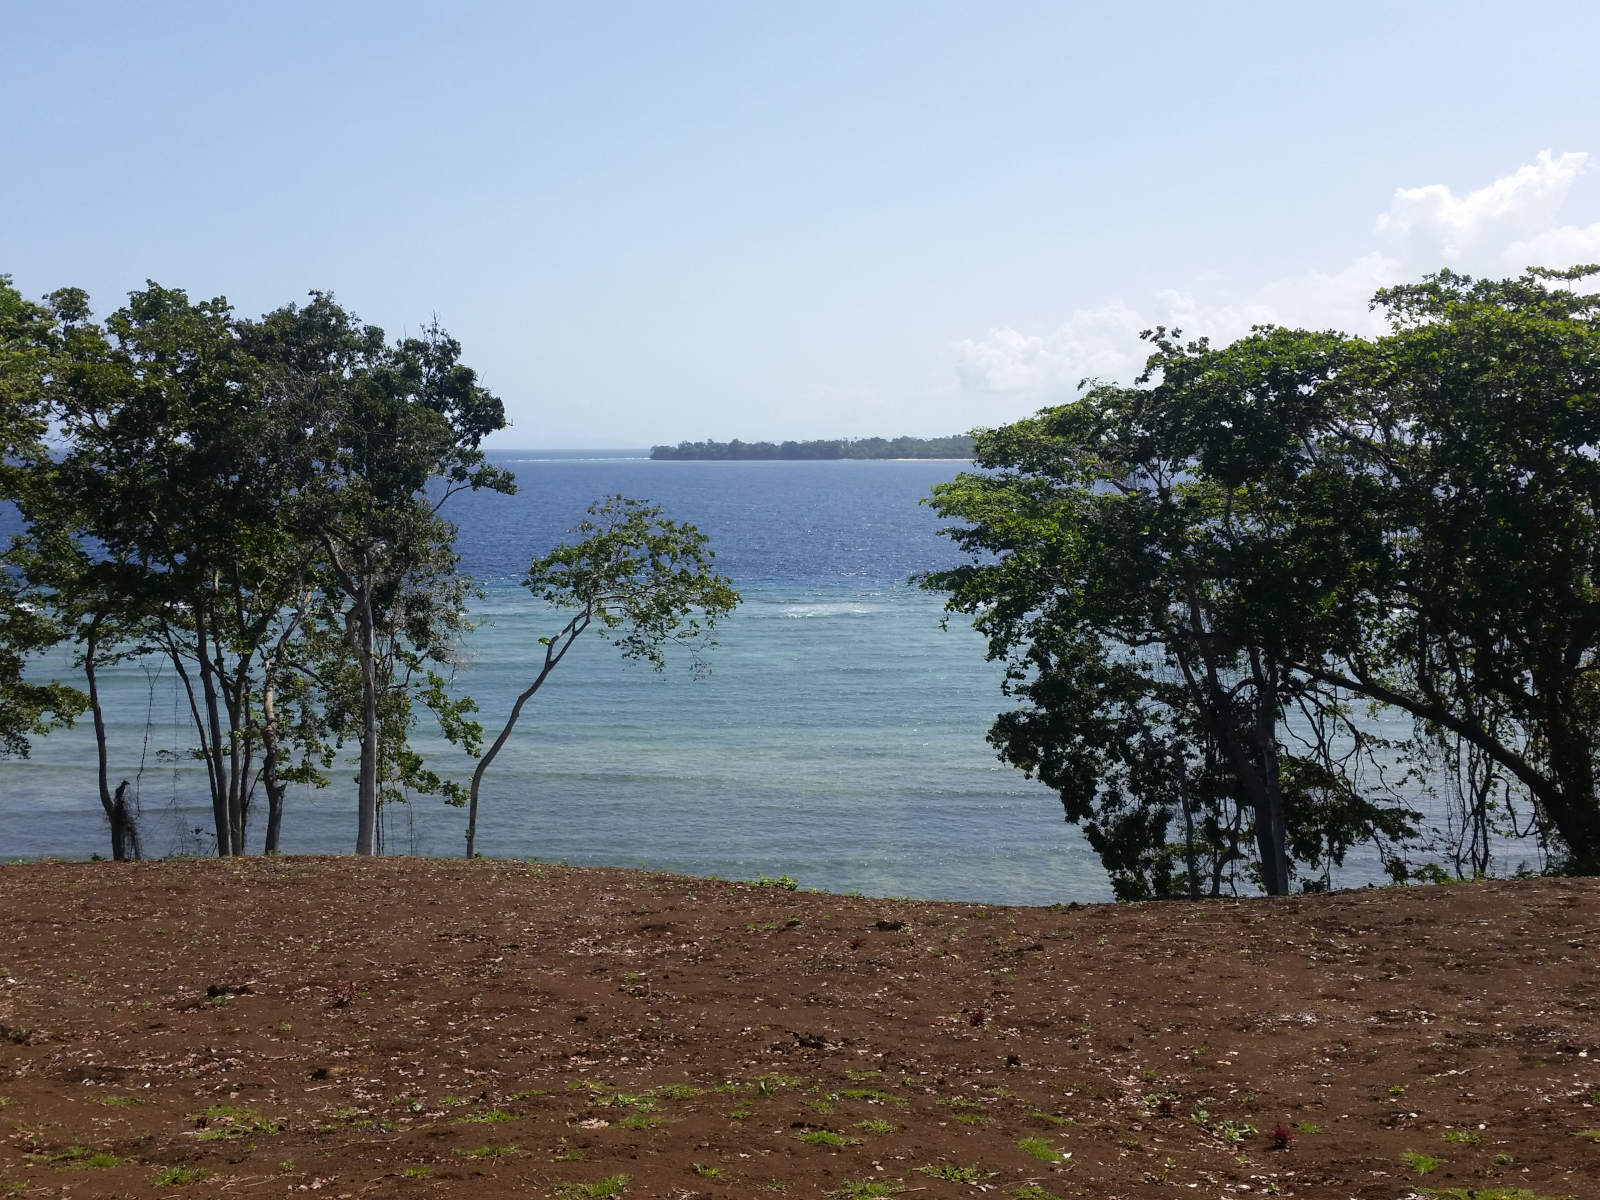 Dive Center For Sale - Land for Business In Bunaken For Sale